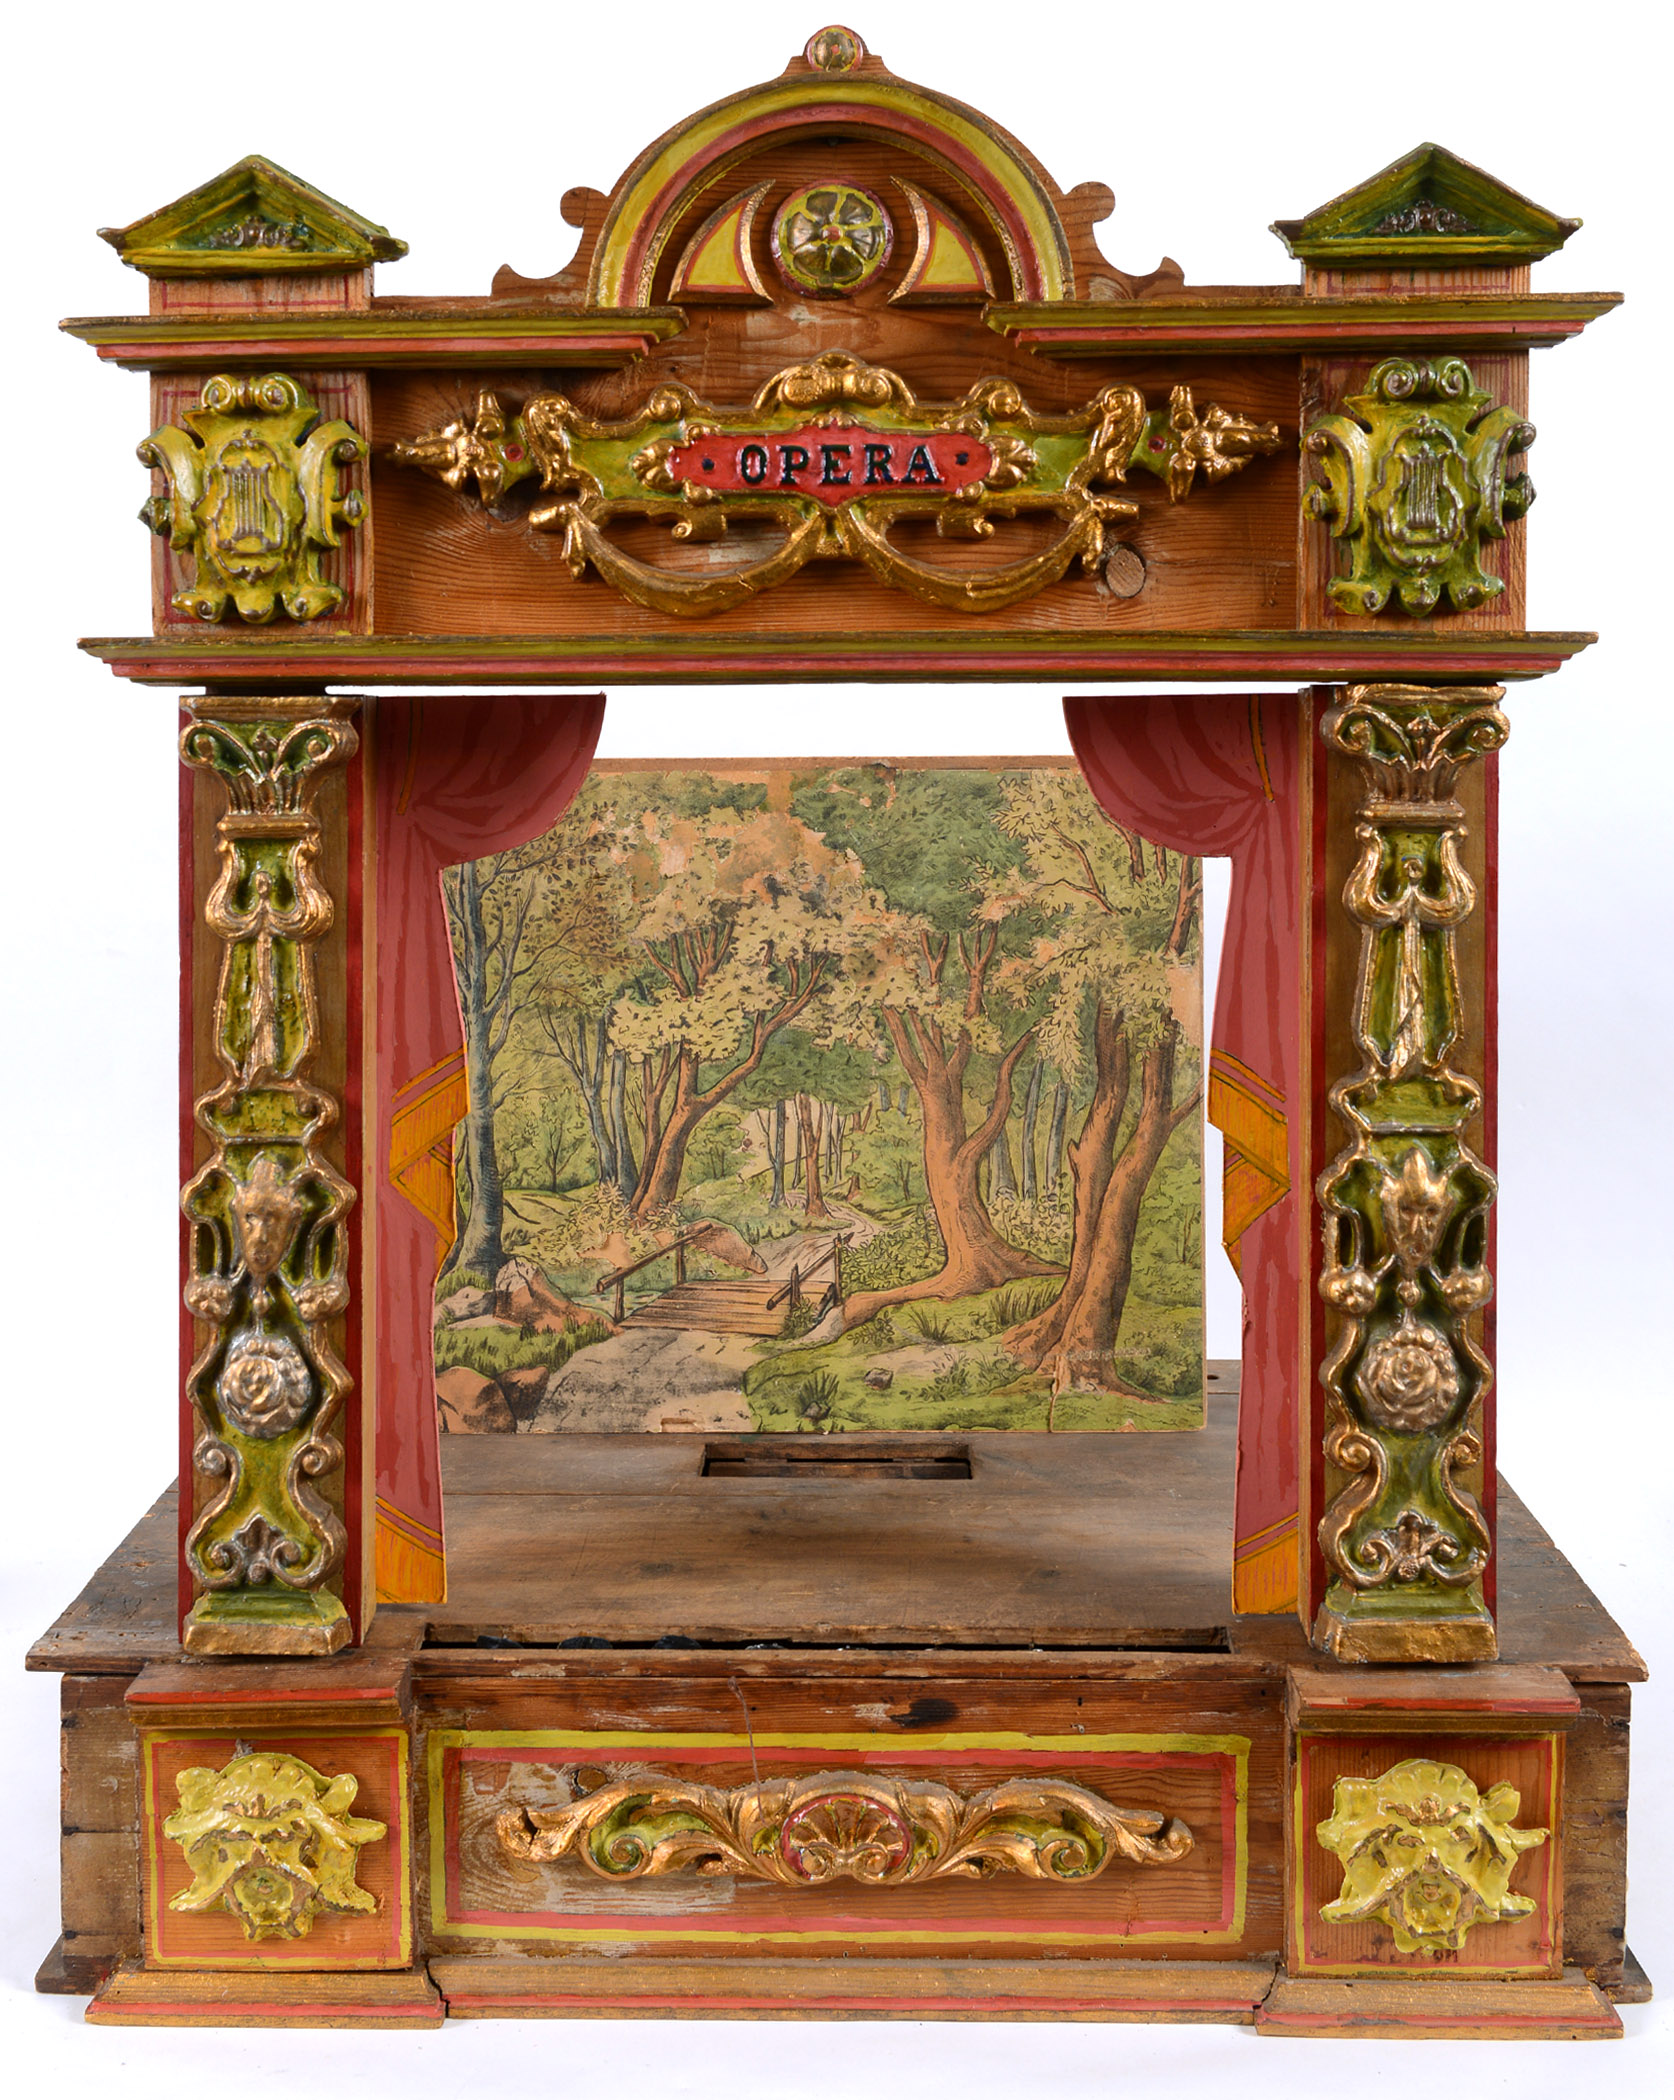 19THC GERMAN TOY THEATRE a painted wooden theatre probably by